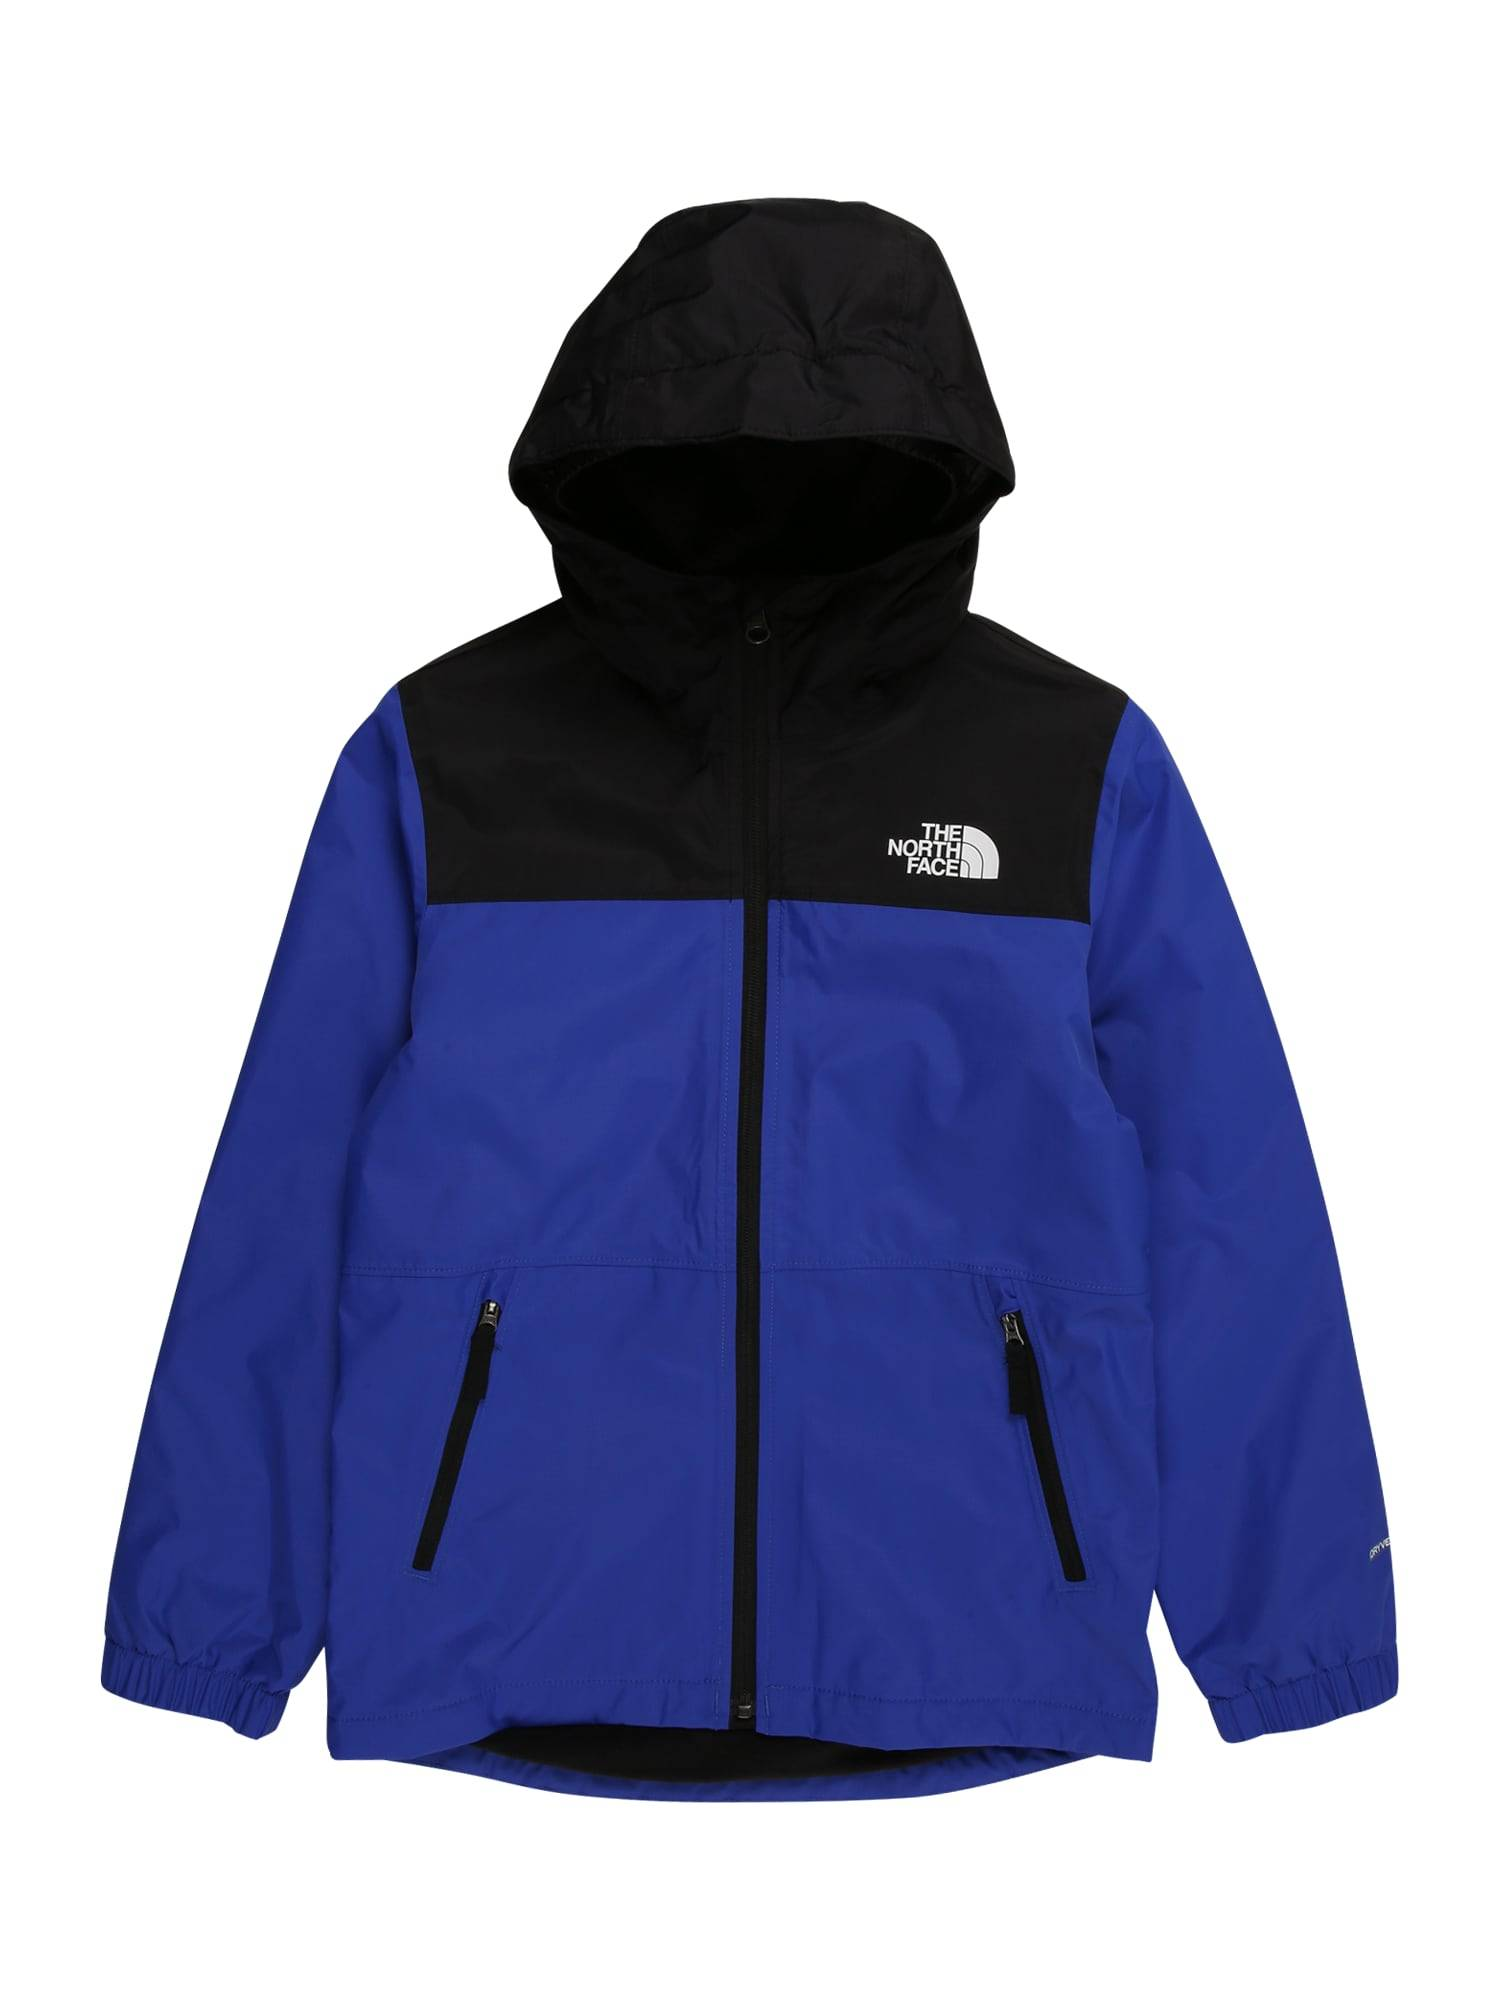 THE NORTH FACE Giacca funzionale 'STORM' Blu